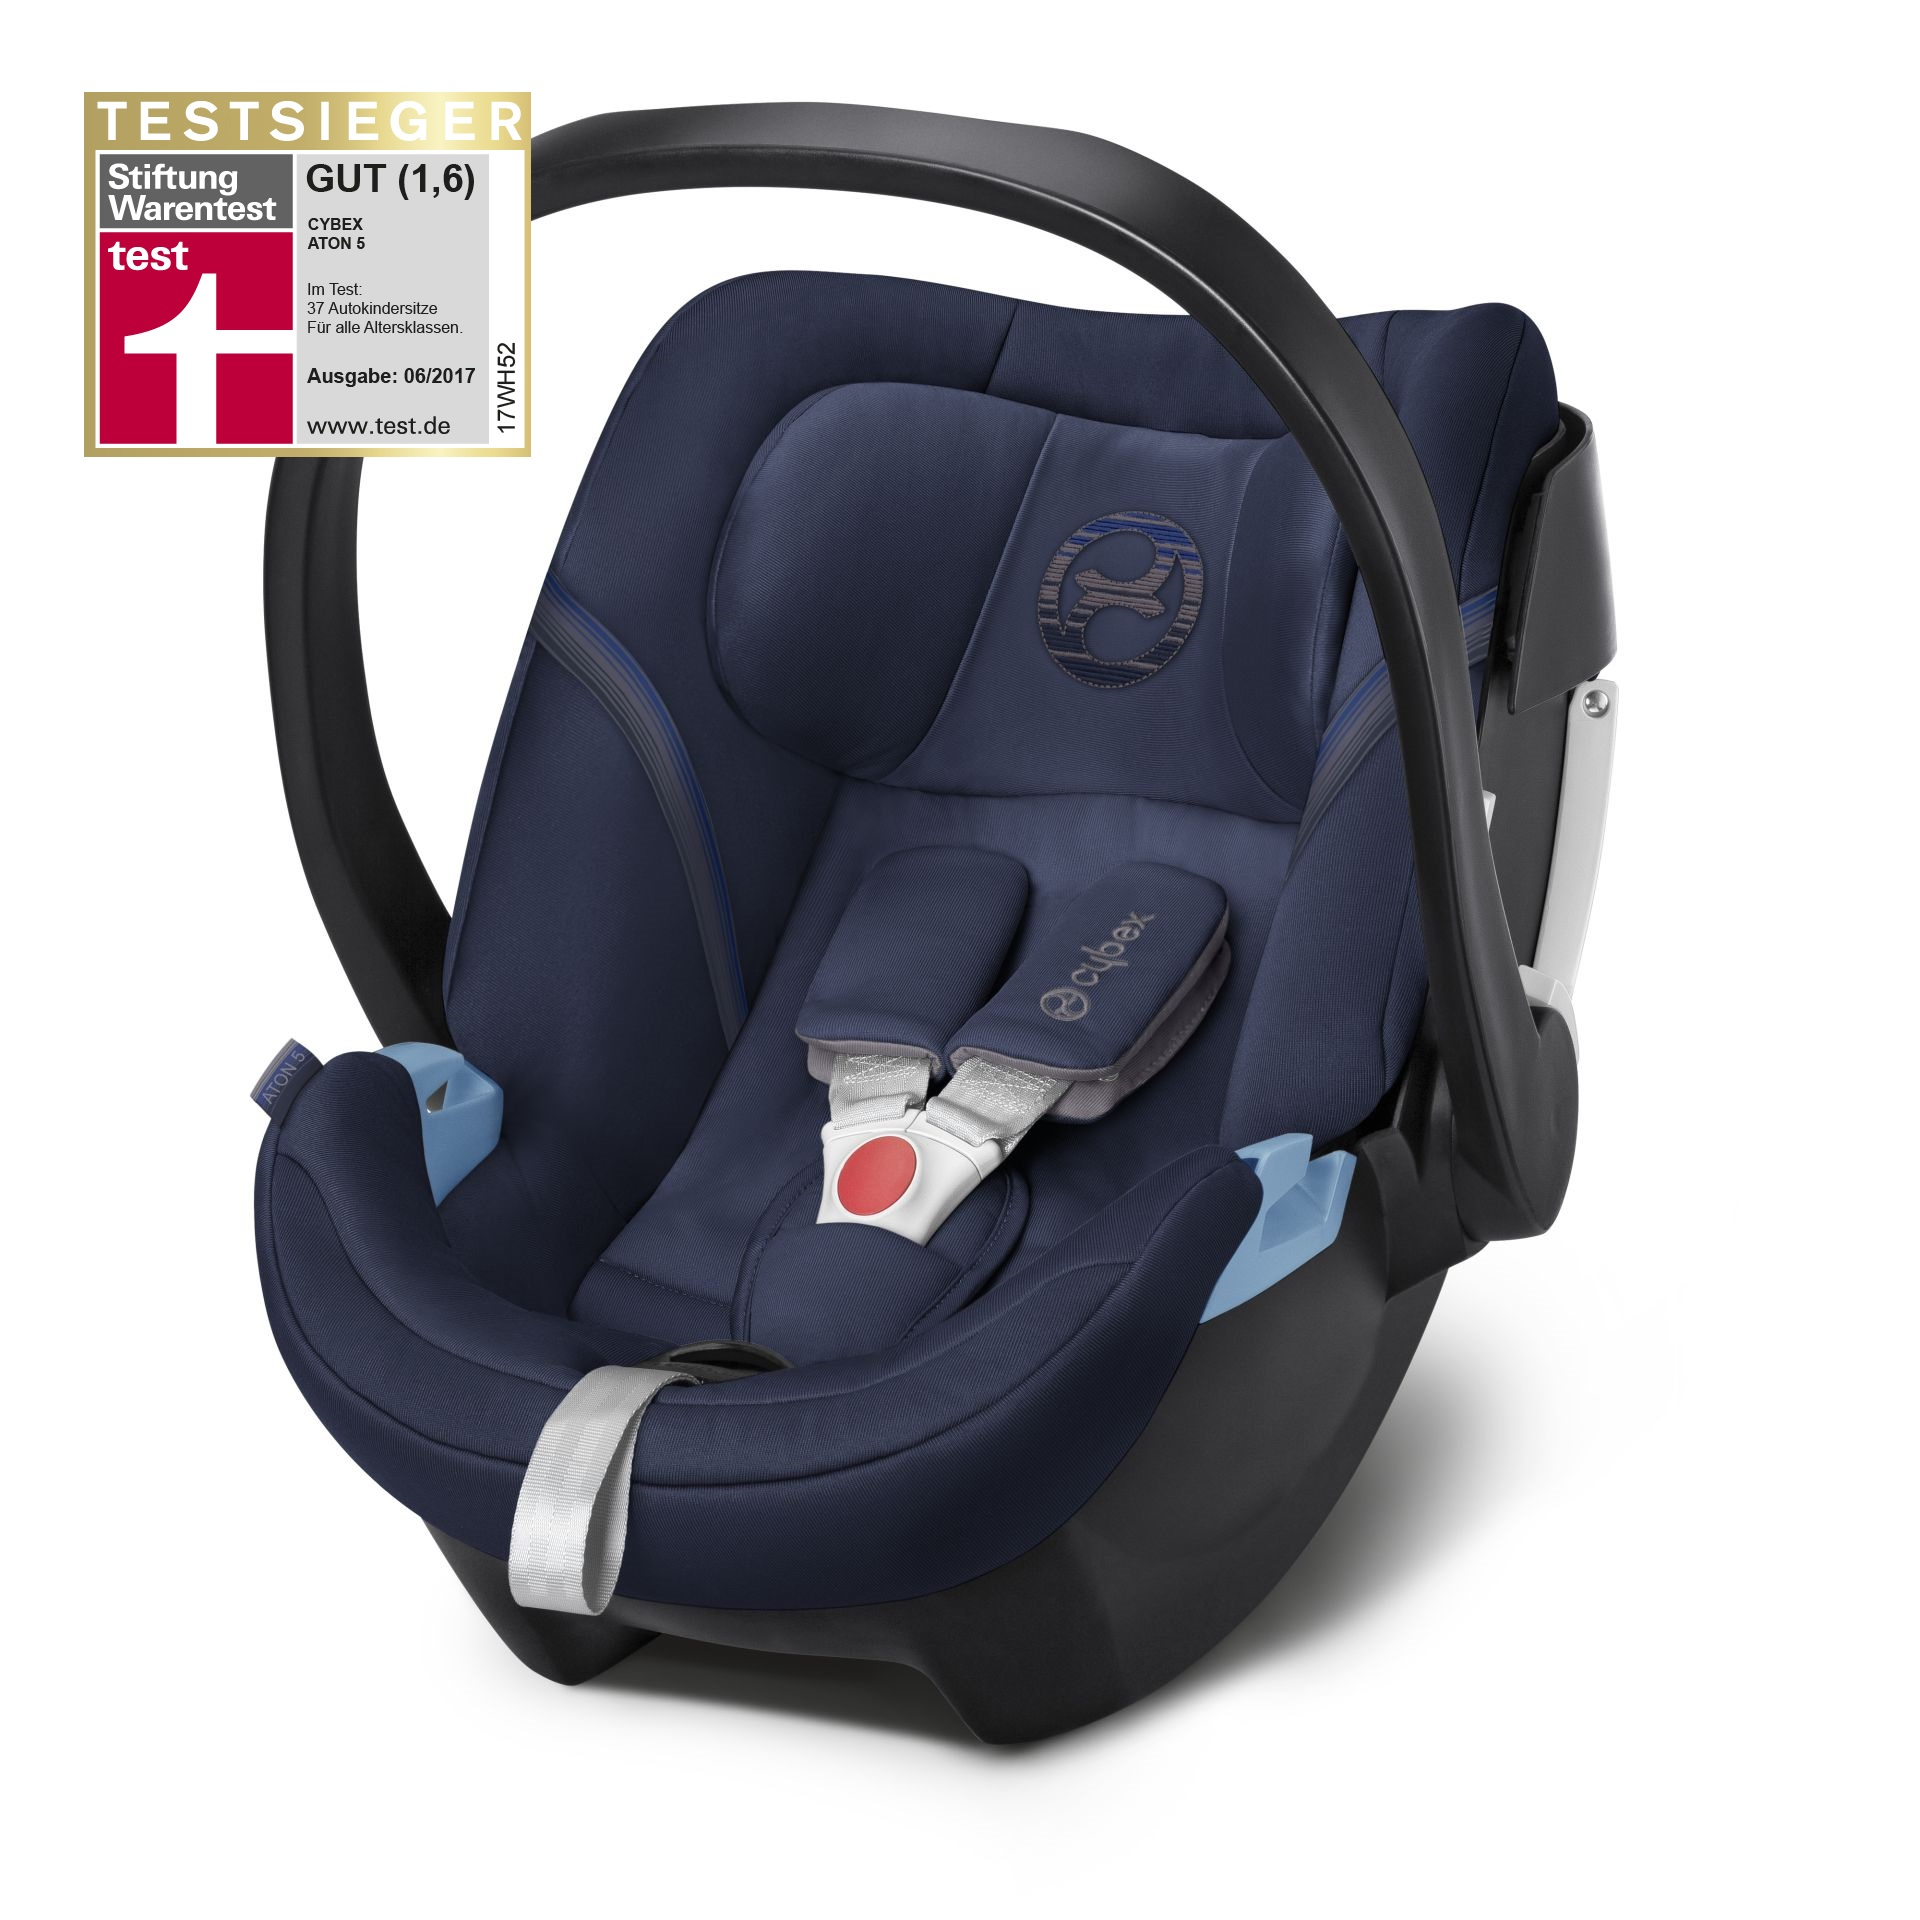 Cybex Infant Car Seat Aton 5 Denim Blue - blue 2018 - large image 1 ...  sc 1 st  Baby products online store - worldwide shipping & Cybex Infant Car Seat Aton 5 2018 Denim Blue - blue - Buy at ...